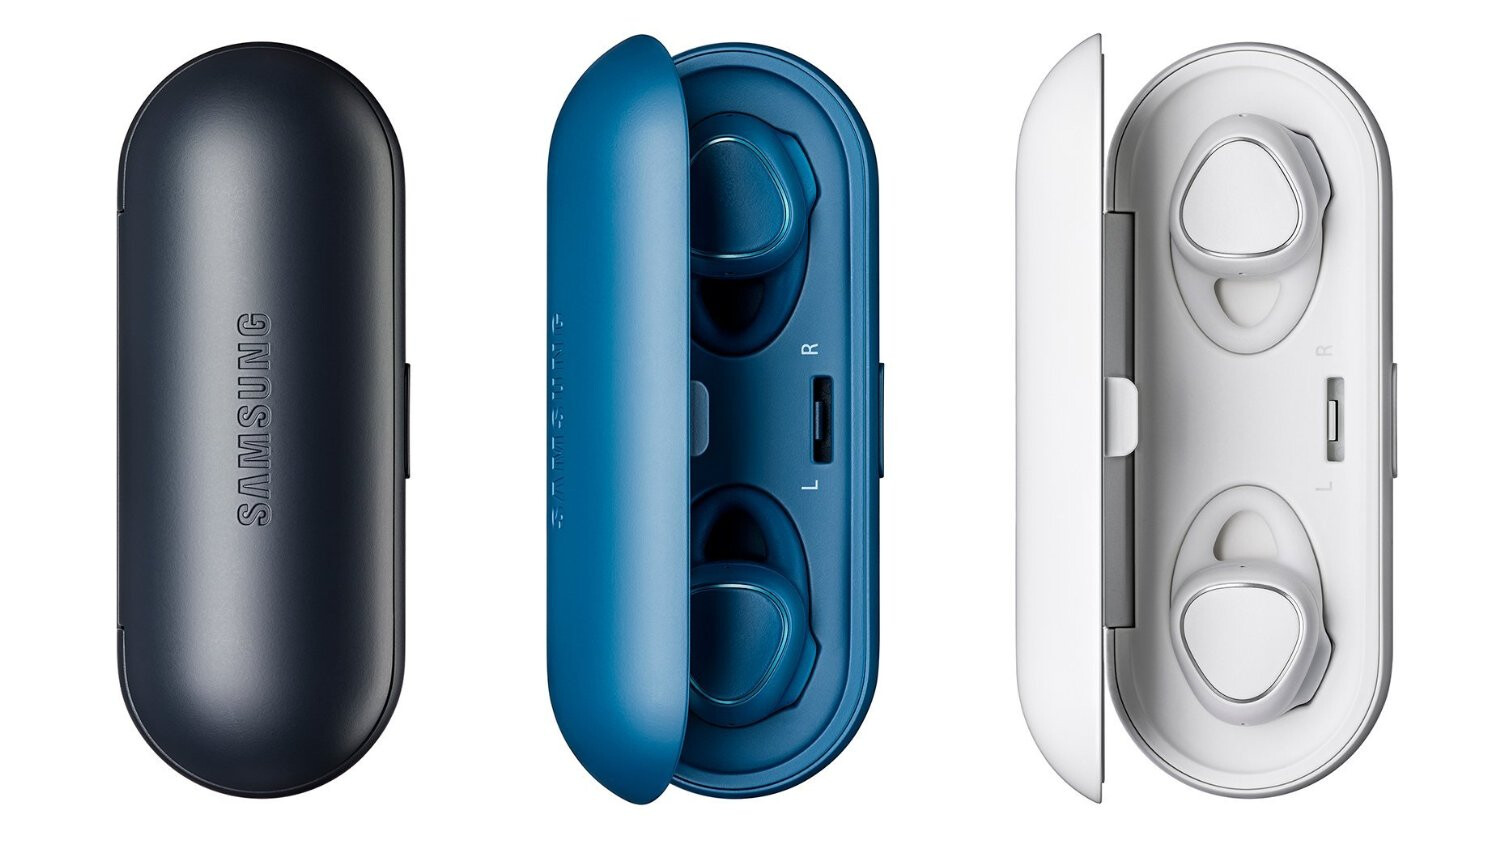 Deal Samsung Gear Iconx Wireless Earphones With Built In Music Player Are Now 32 Off Phonearena